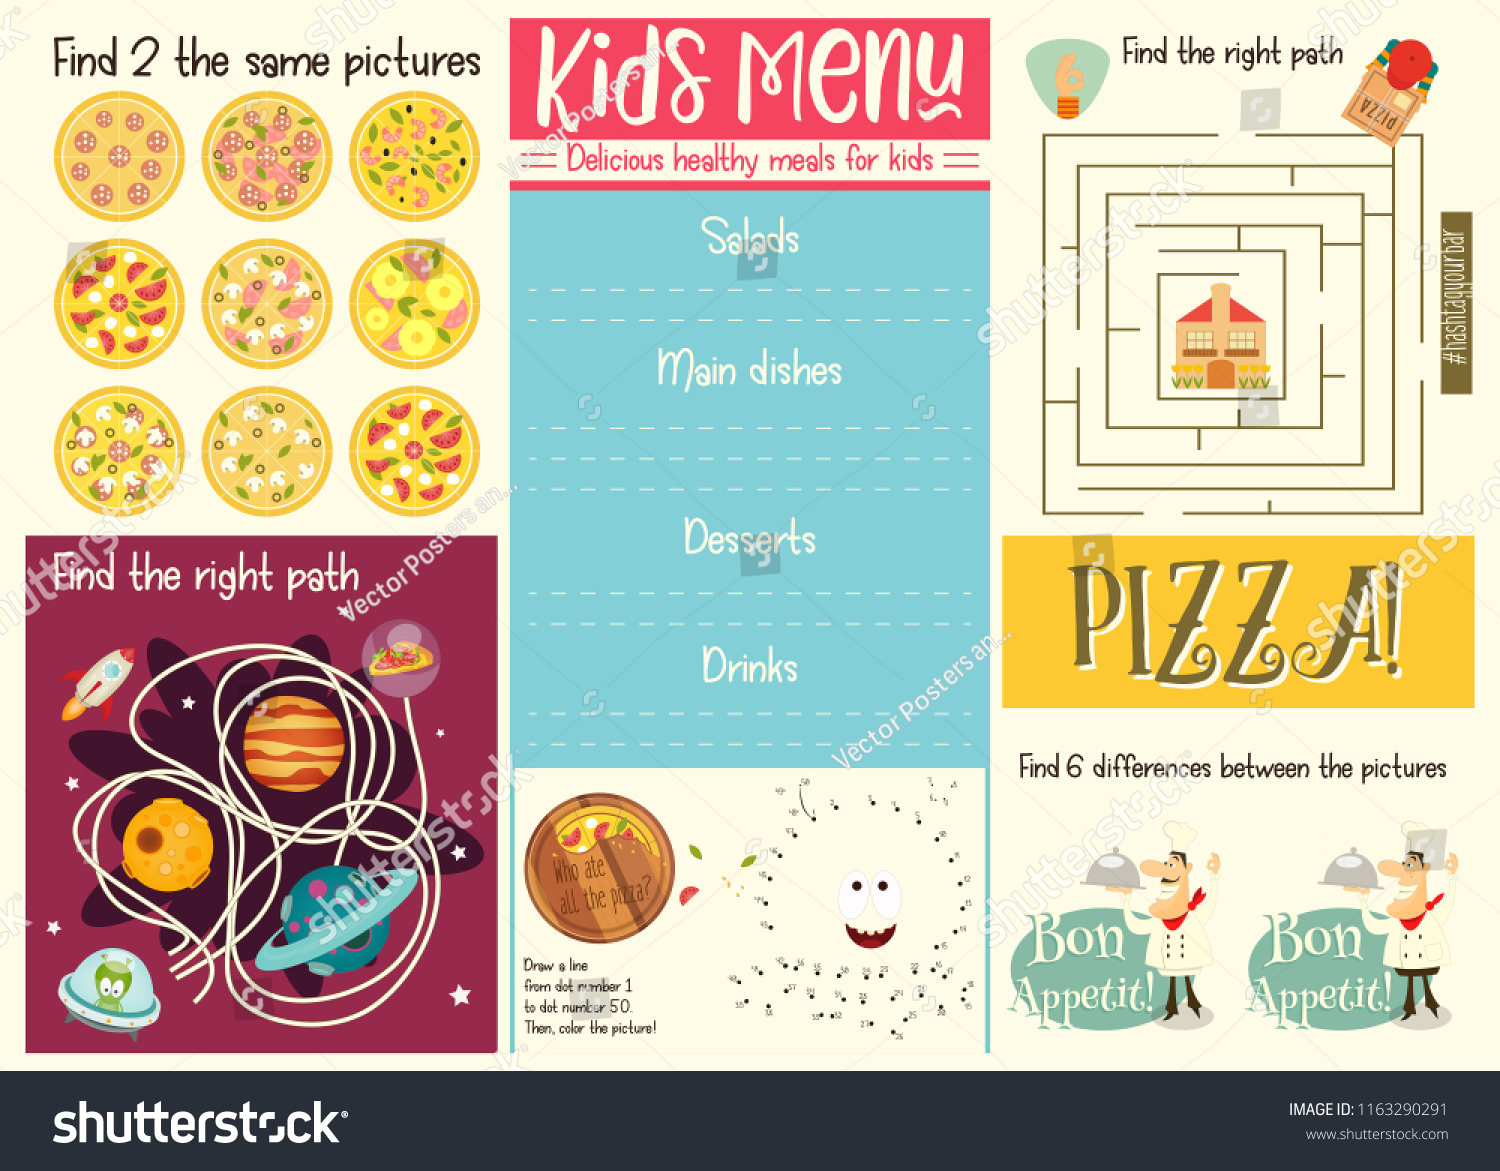 Kids Menu Template Placemat Cafe Pizzeria Image Vectorielle De Stock